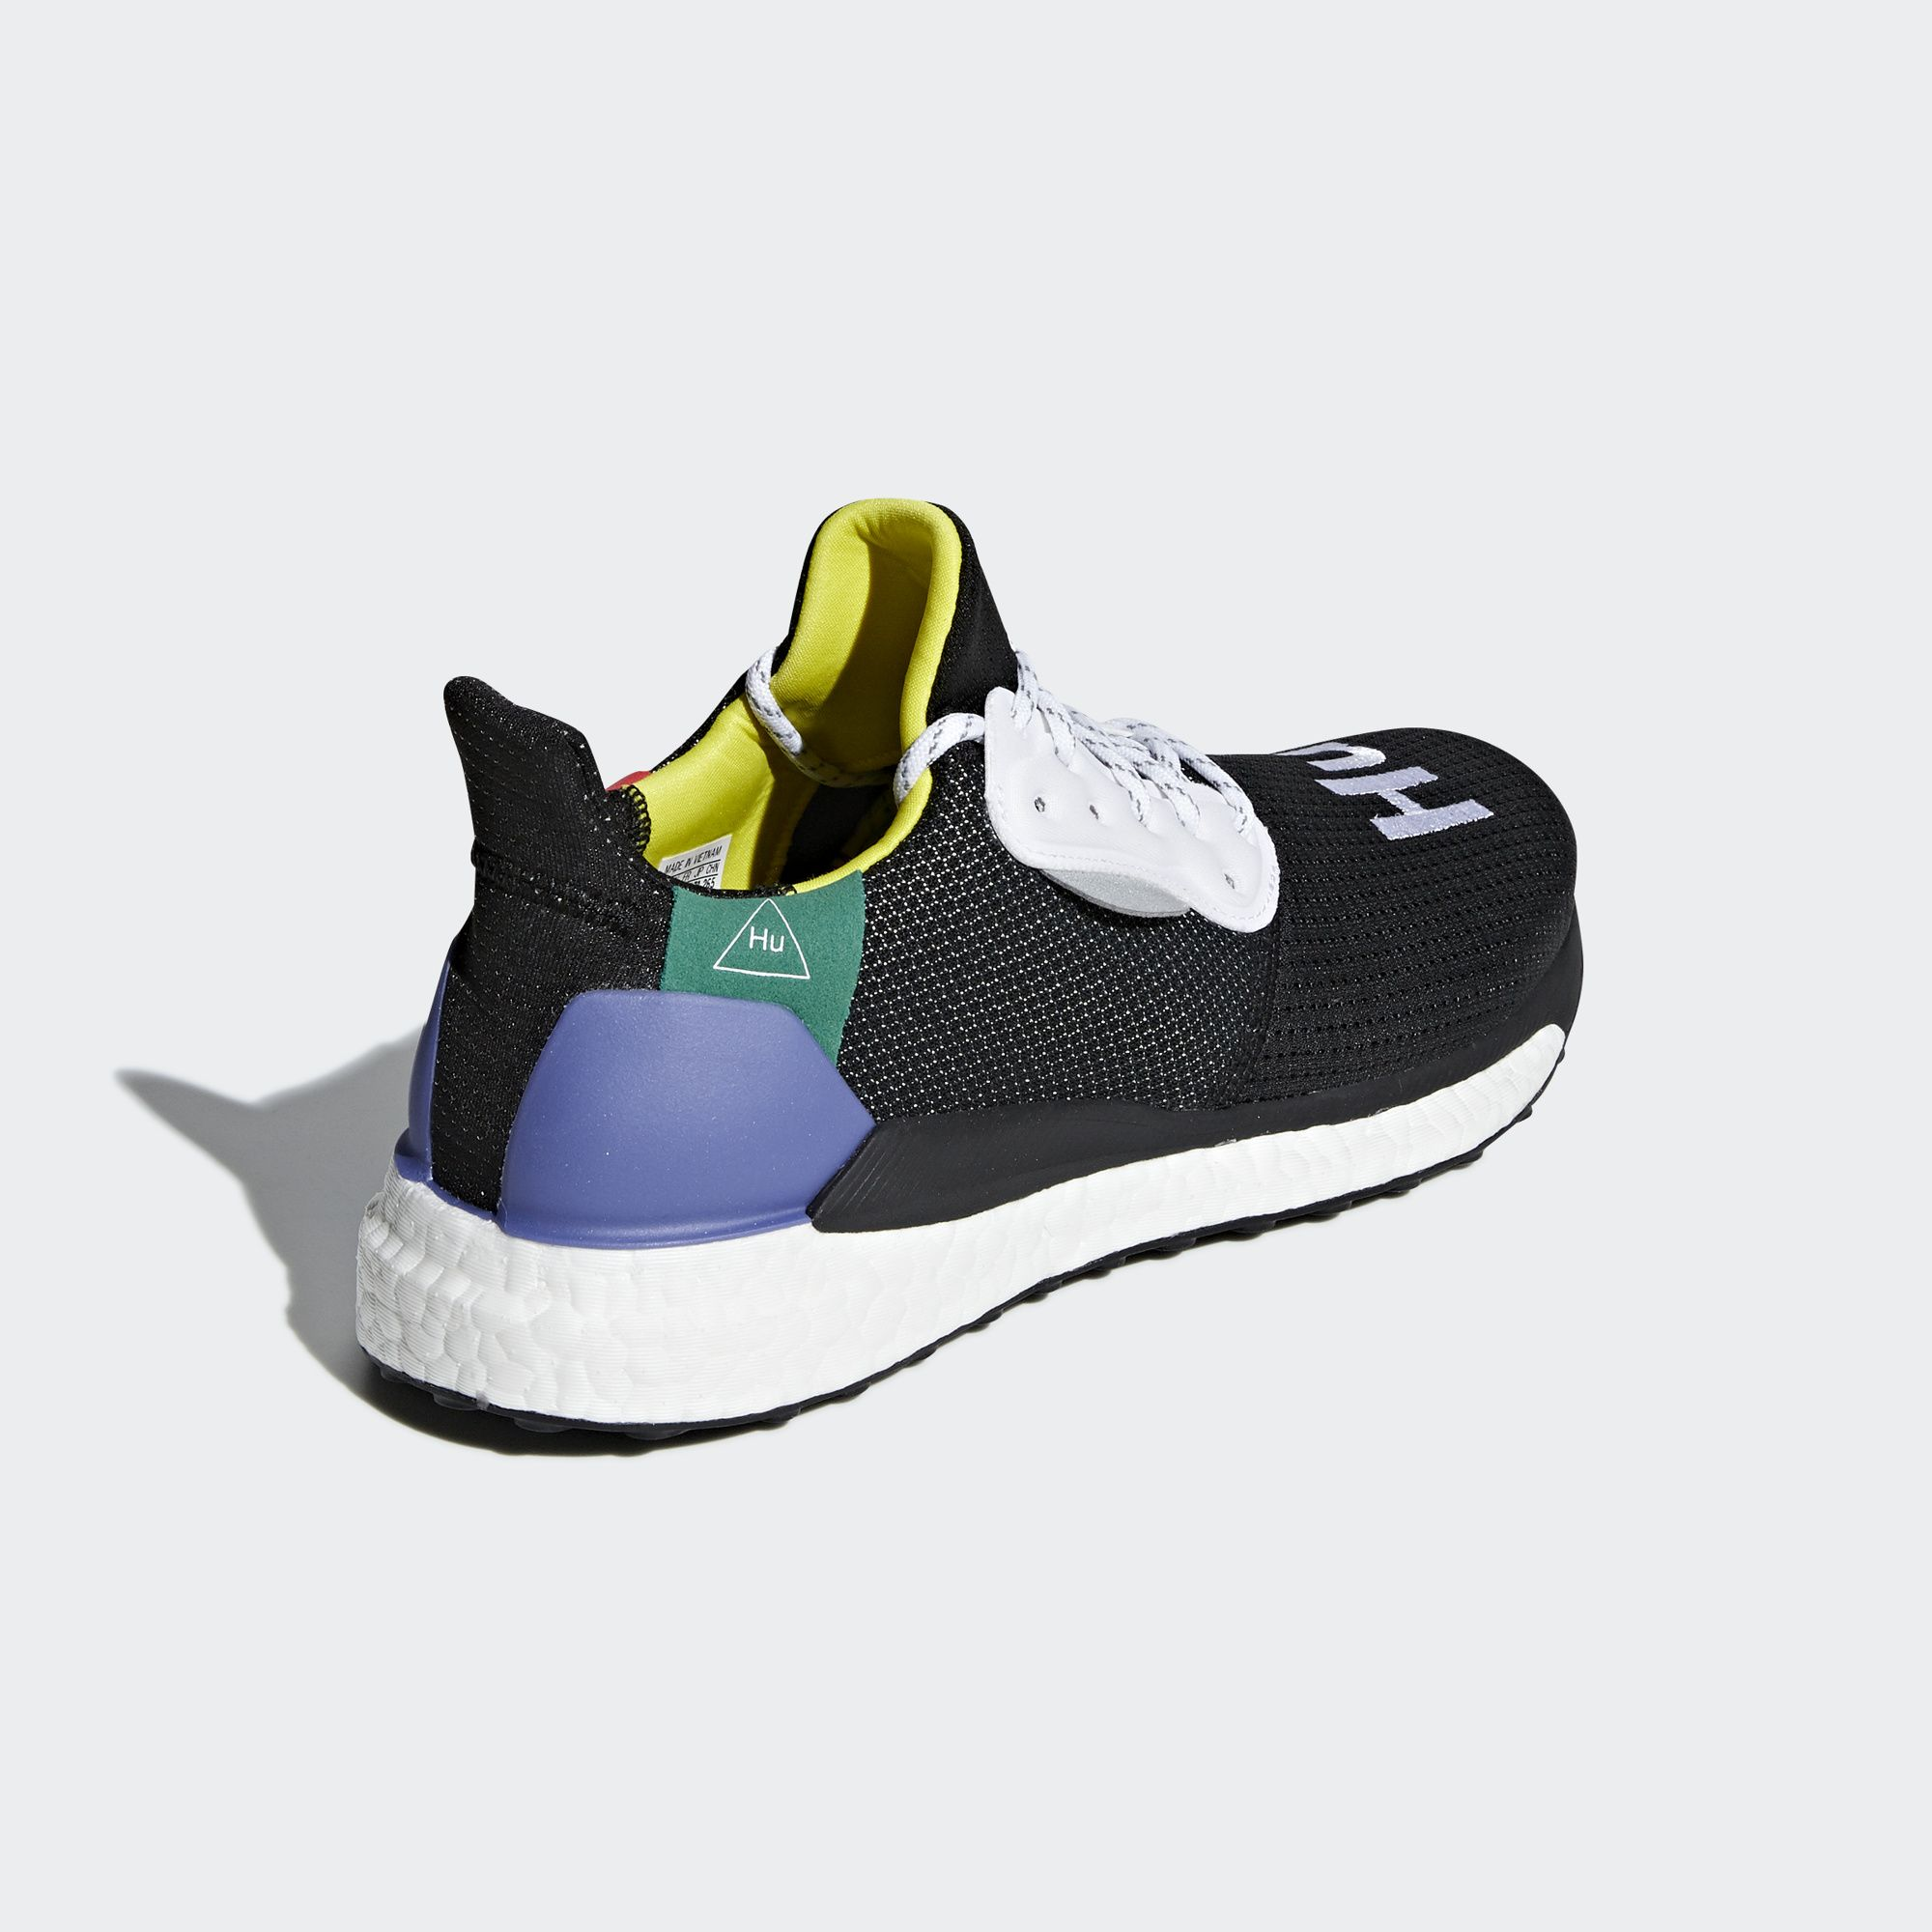 04-adidas-pharrell-williams-hu-solar-glide-00-black-bb8041